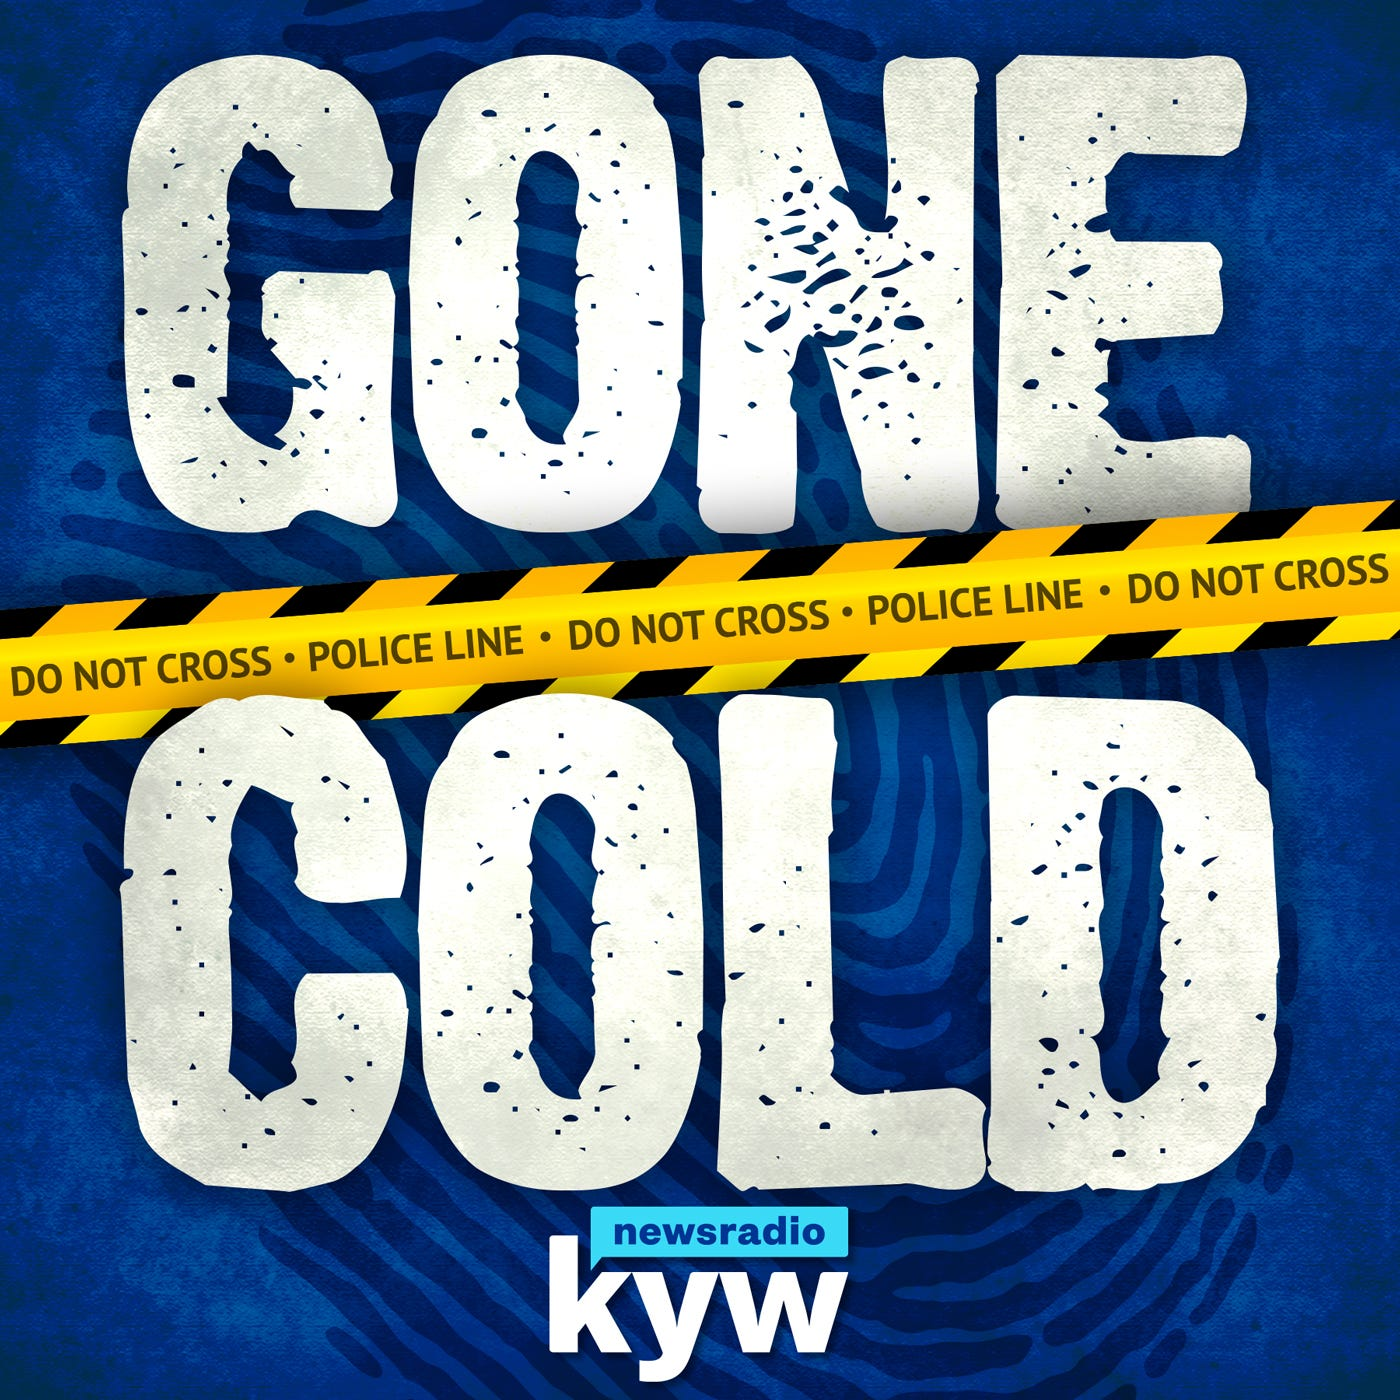 Gone Cold: Philadelphia Unsolved Murders | A KYW Newsradio True Crime Podcast